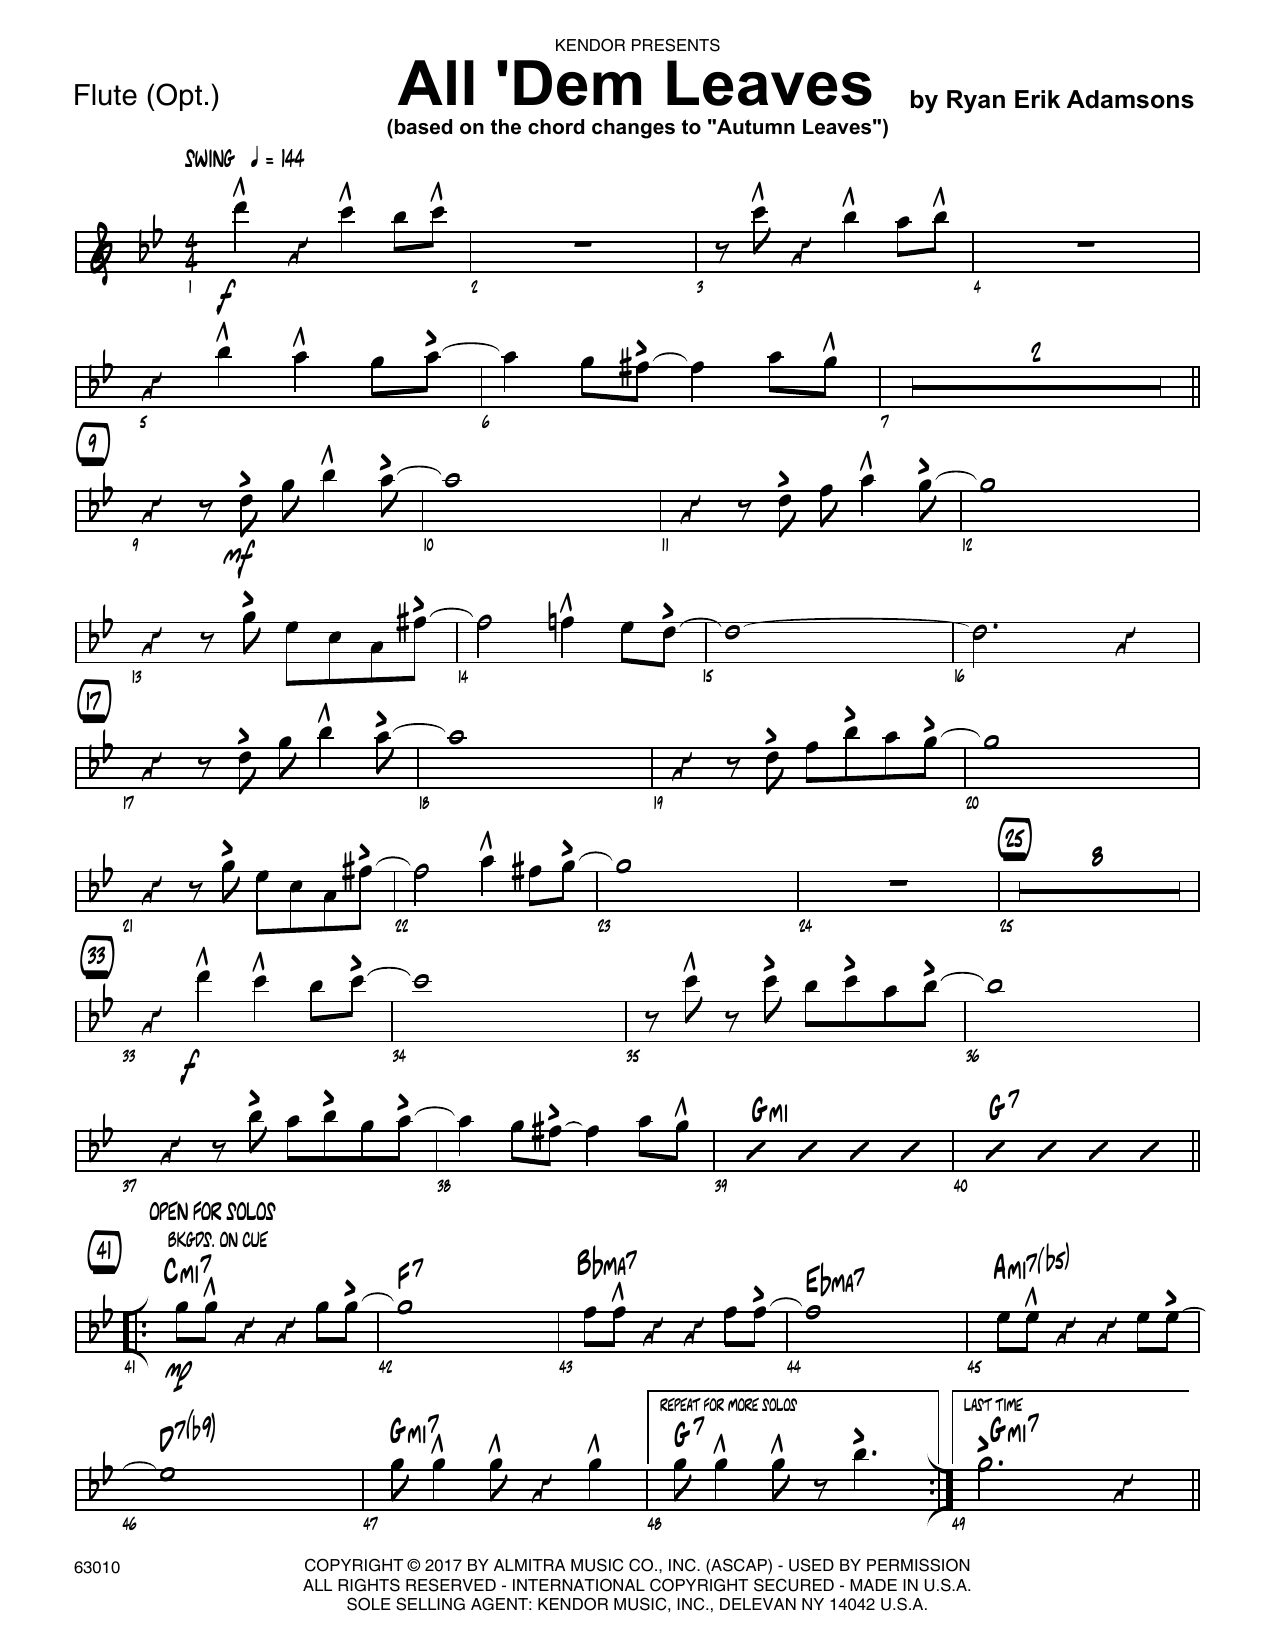 All 'Dem Leaves (based on the chord changes to Autumn Leaves) - Flute Partituras Digitales